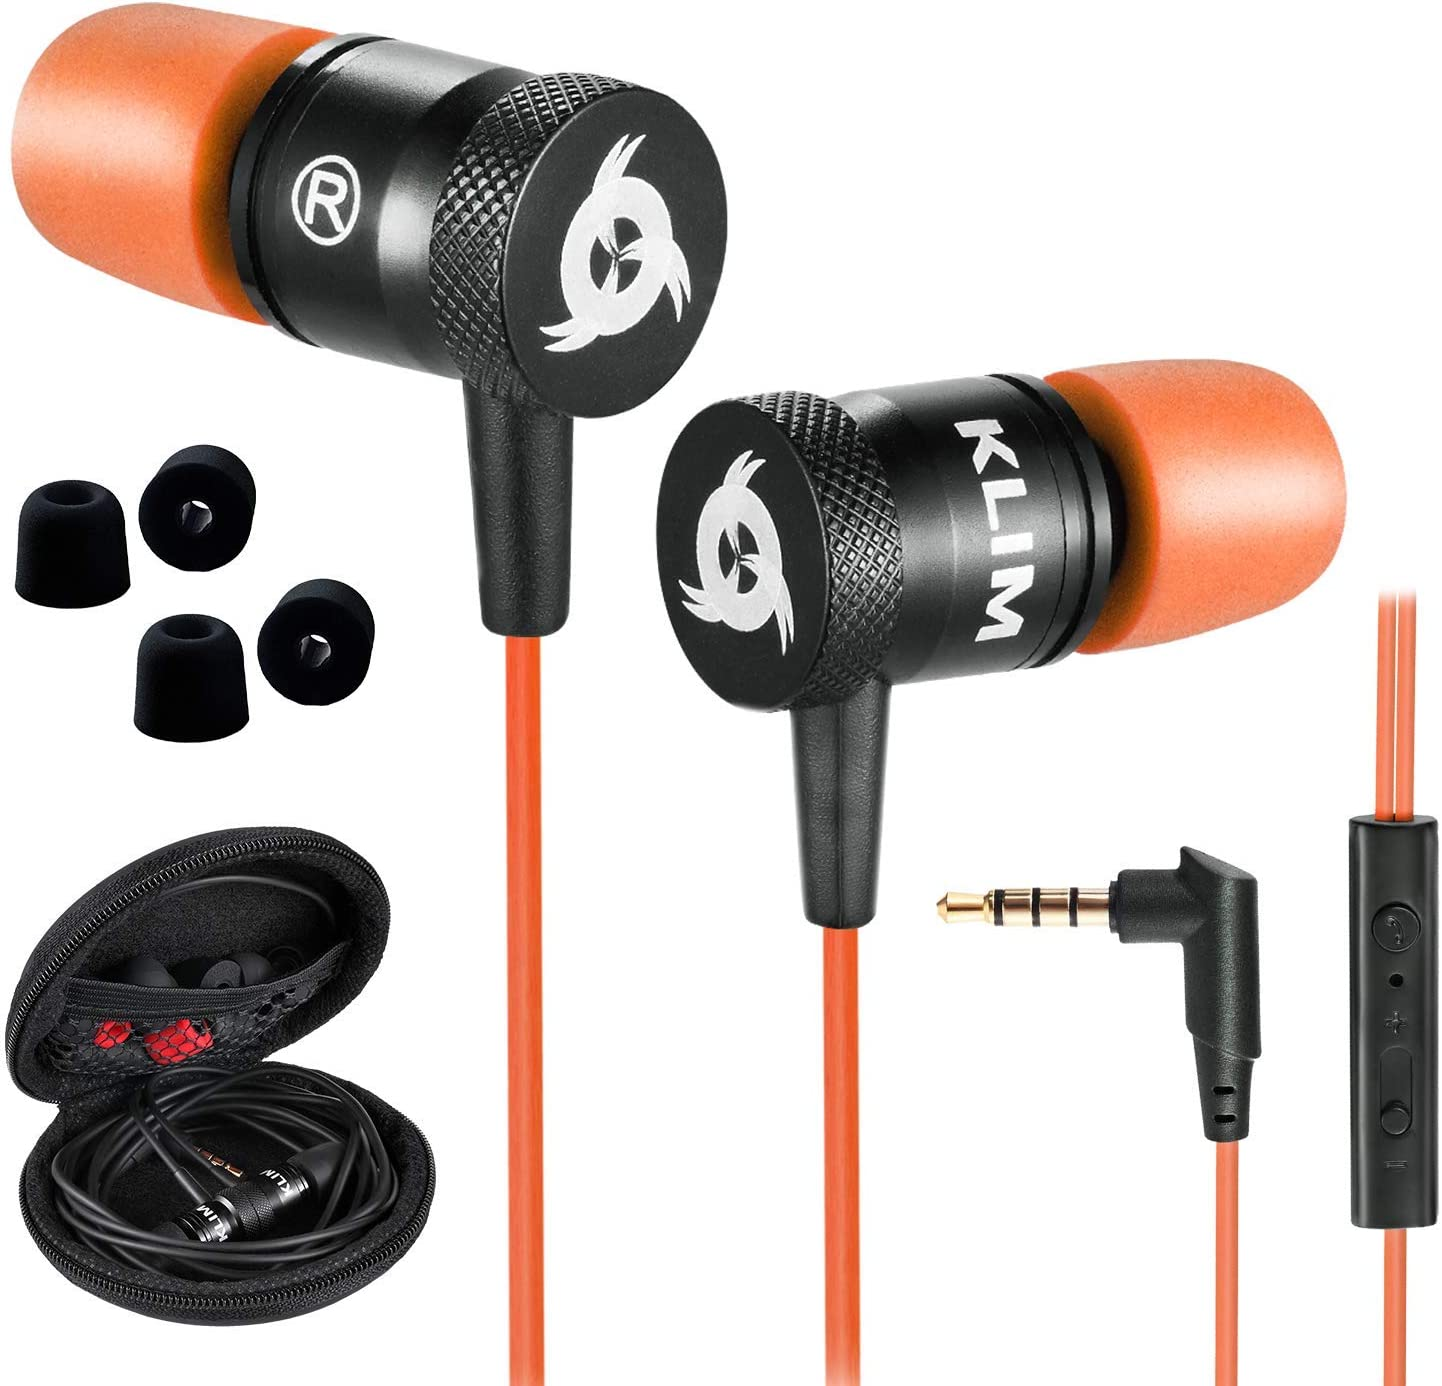 KLIM Fusion Earbuds with Microphone + Long-Lasting Wired Ear Buds - Innovative: in-Ear with Memory Foam + Earphones with Mic and 3.5 mm Jack - Gaming Earbuds - New 2021 Version (Orange)